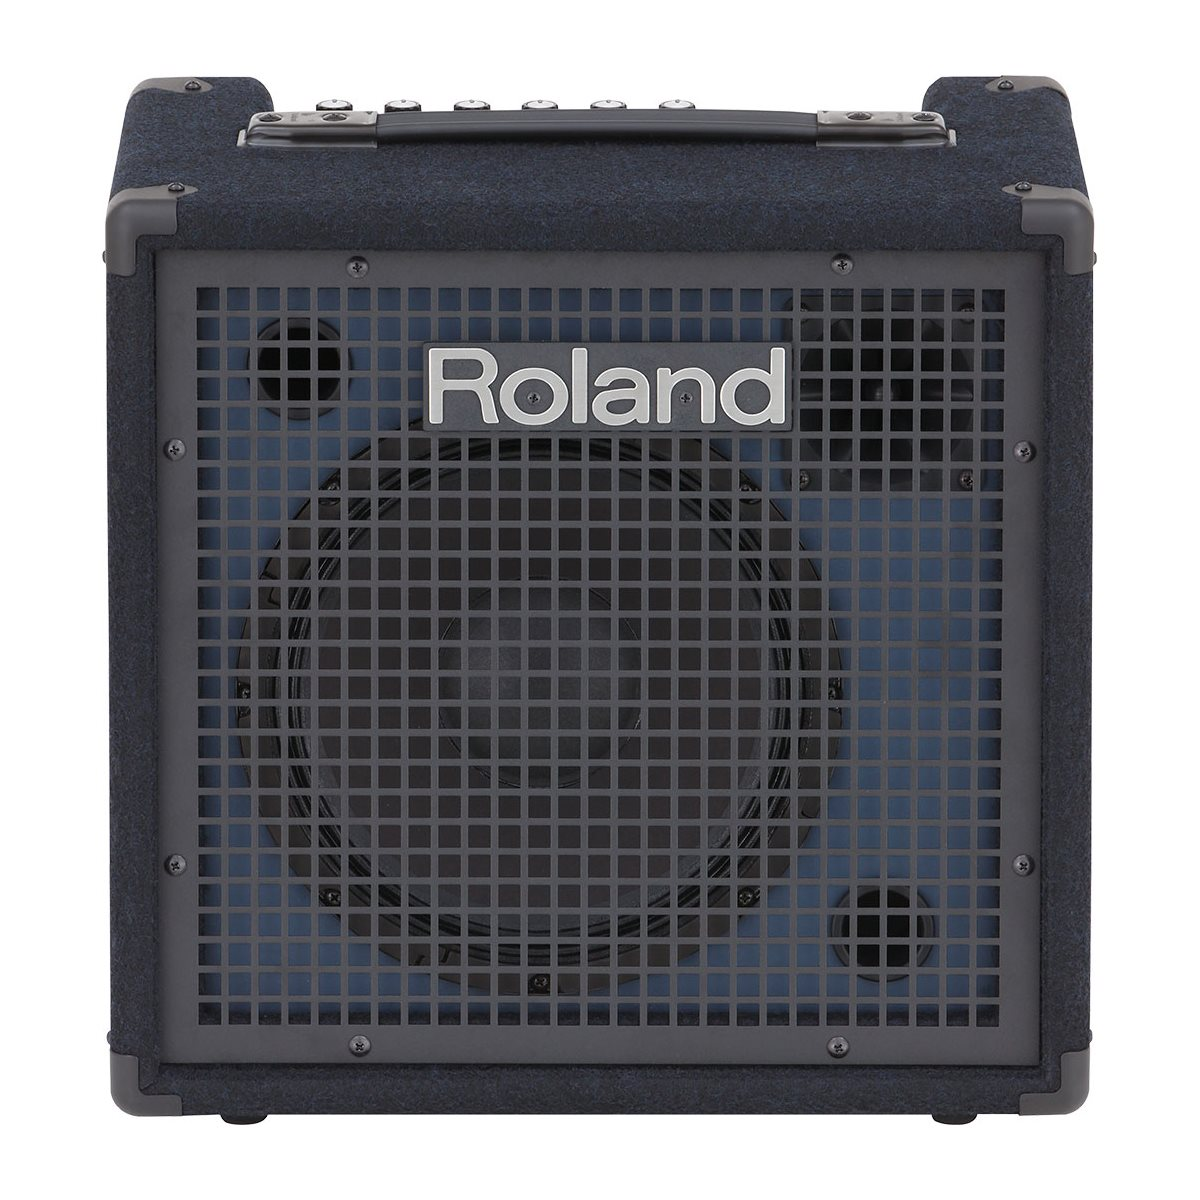 ROLAND - kc-80 - Keyboard Amplifier